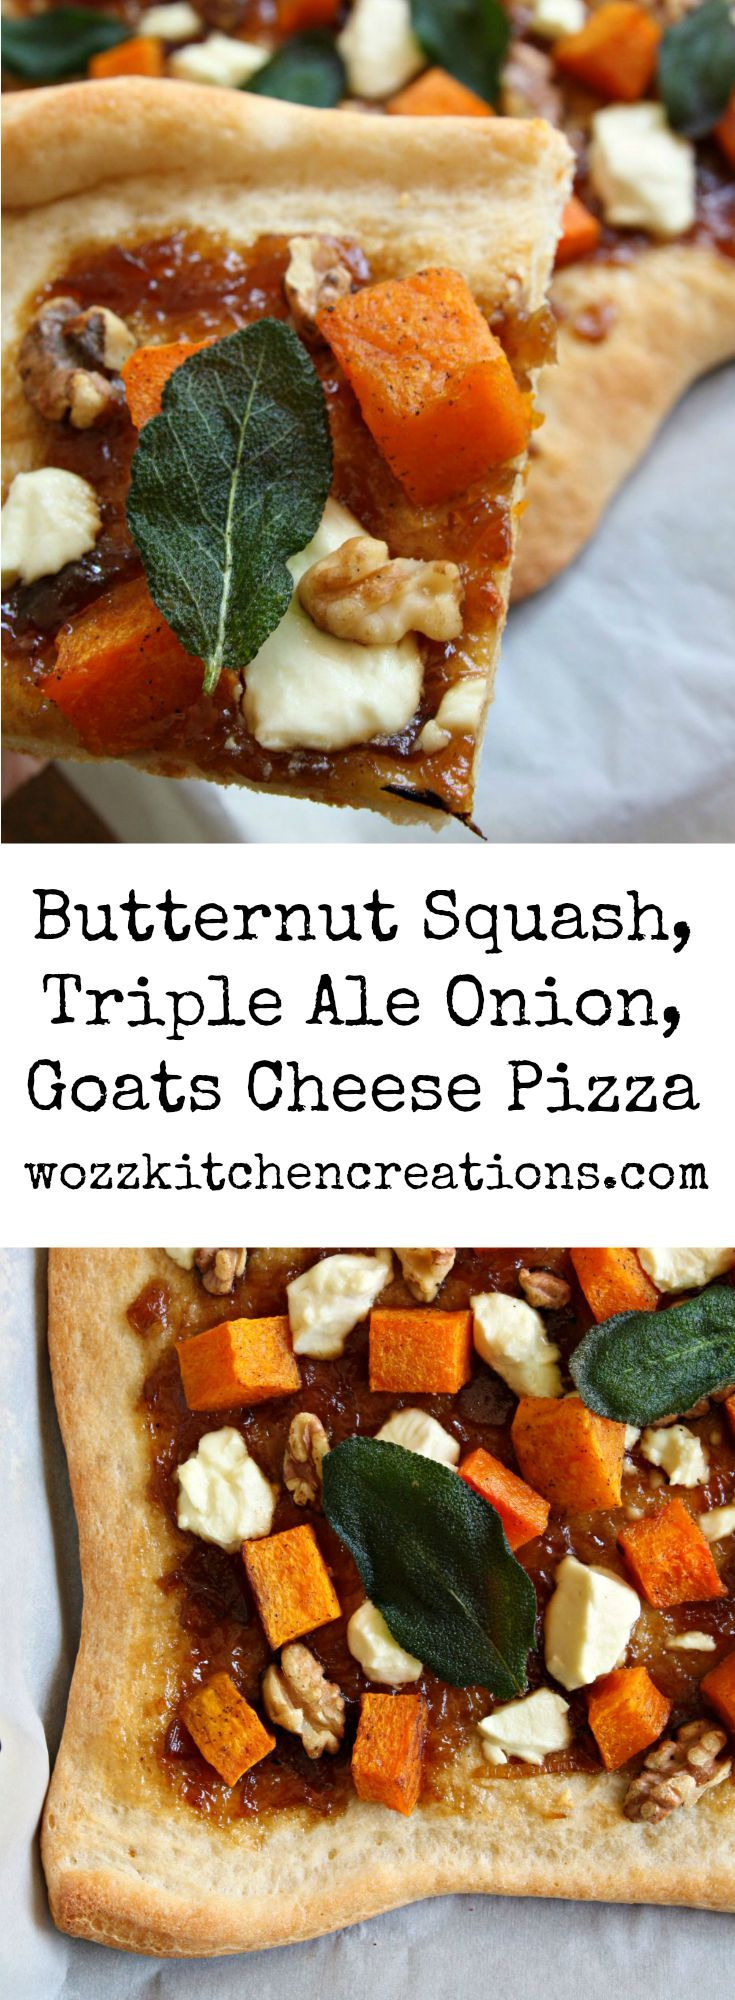 Butternut Squash Pizza with Wozz! Triple Ale Onion Spread, Goats Cheese, Walnuts and Crispy Sage